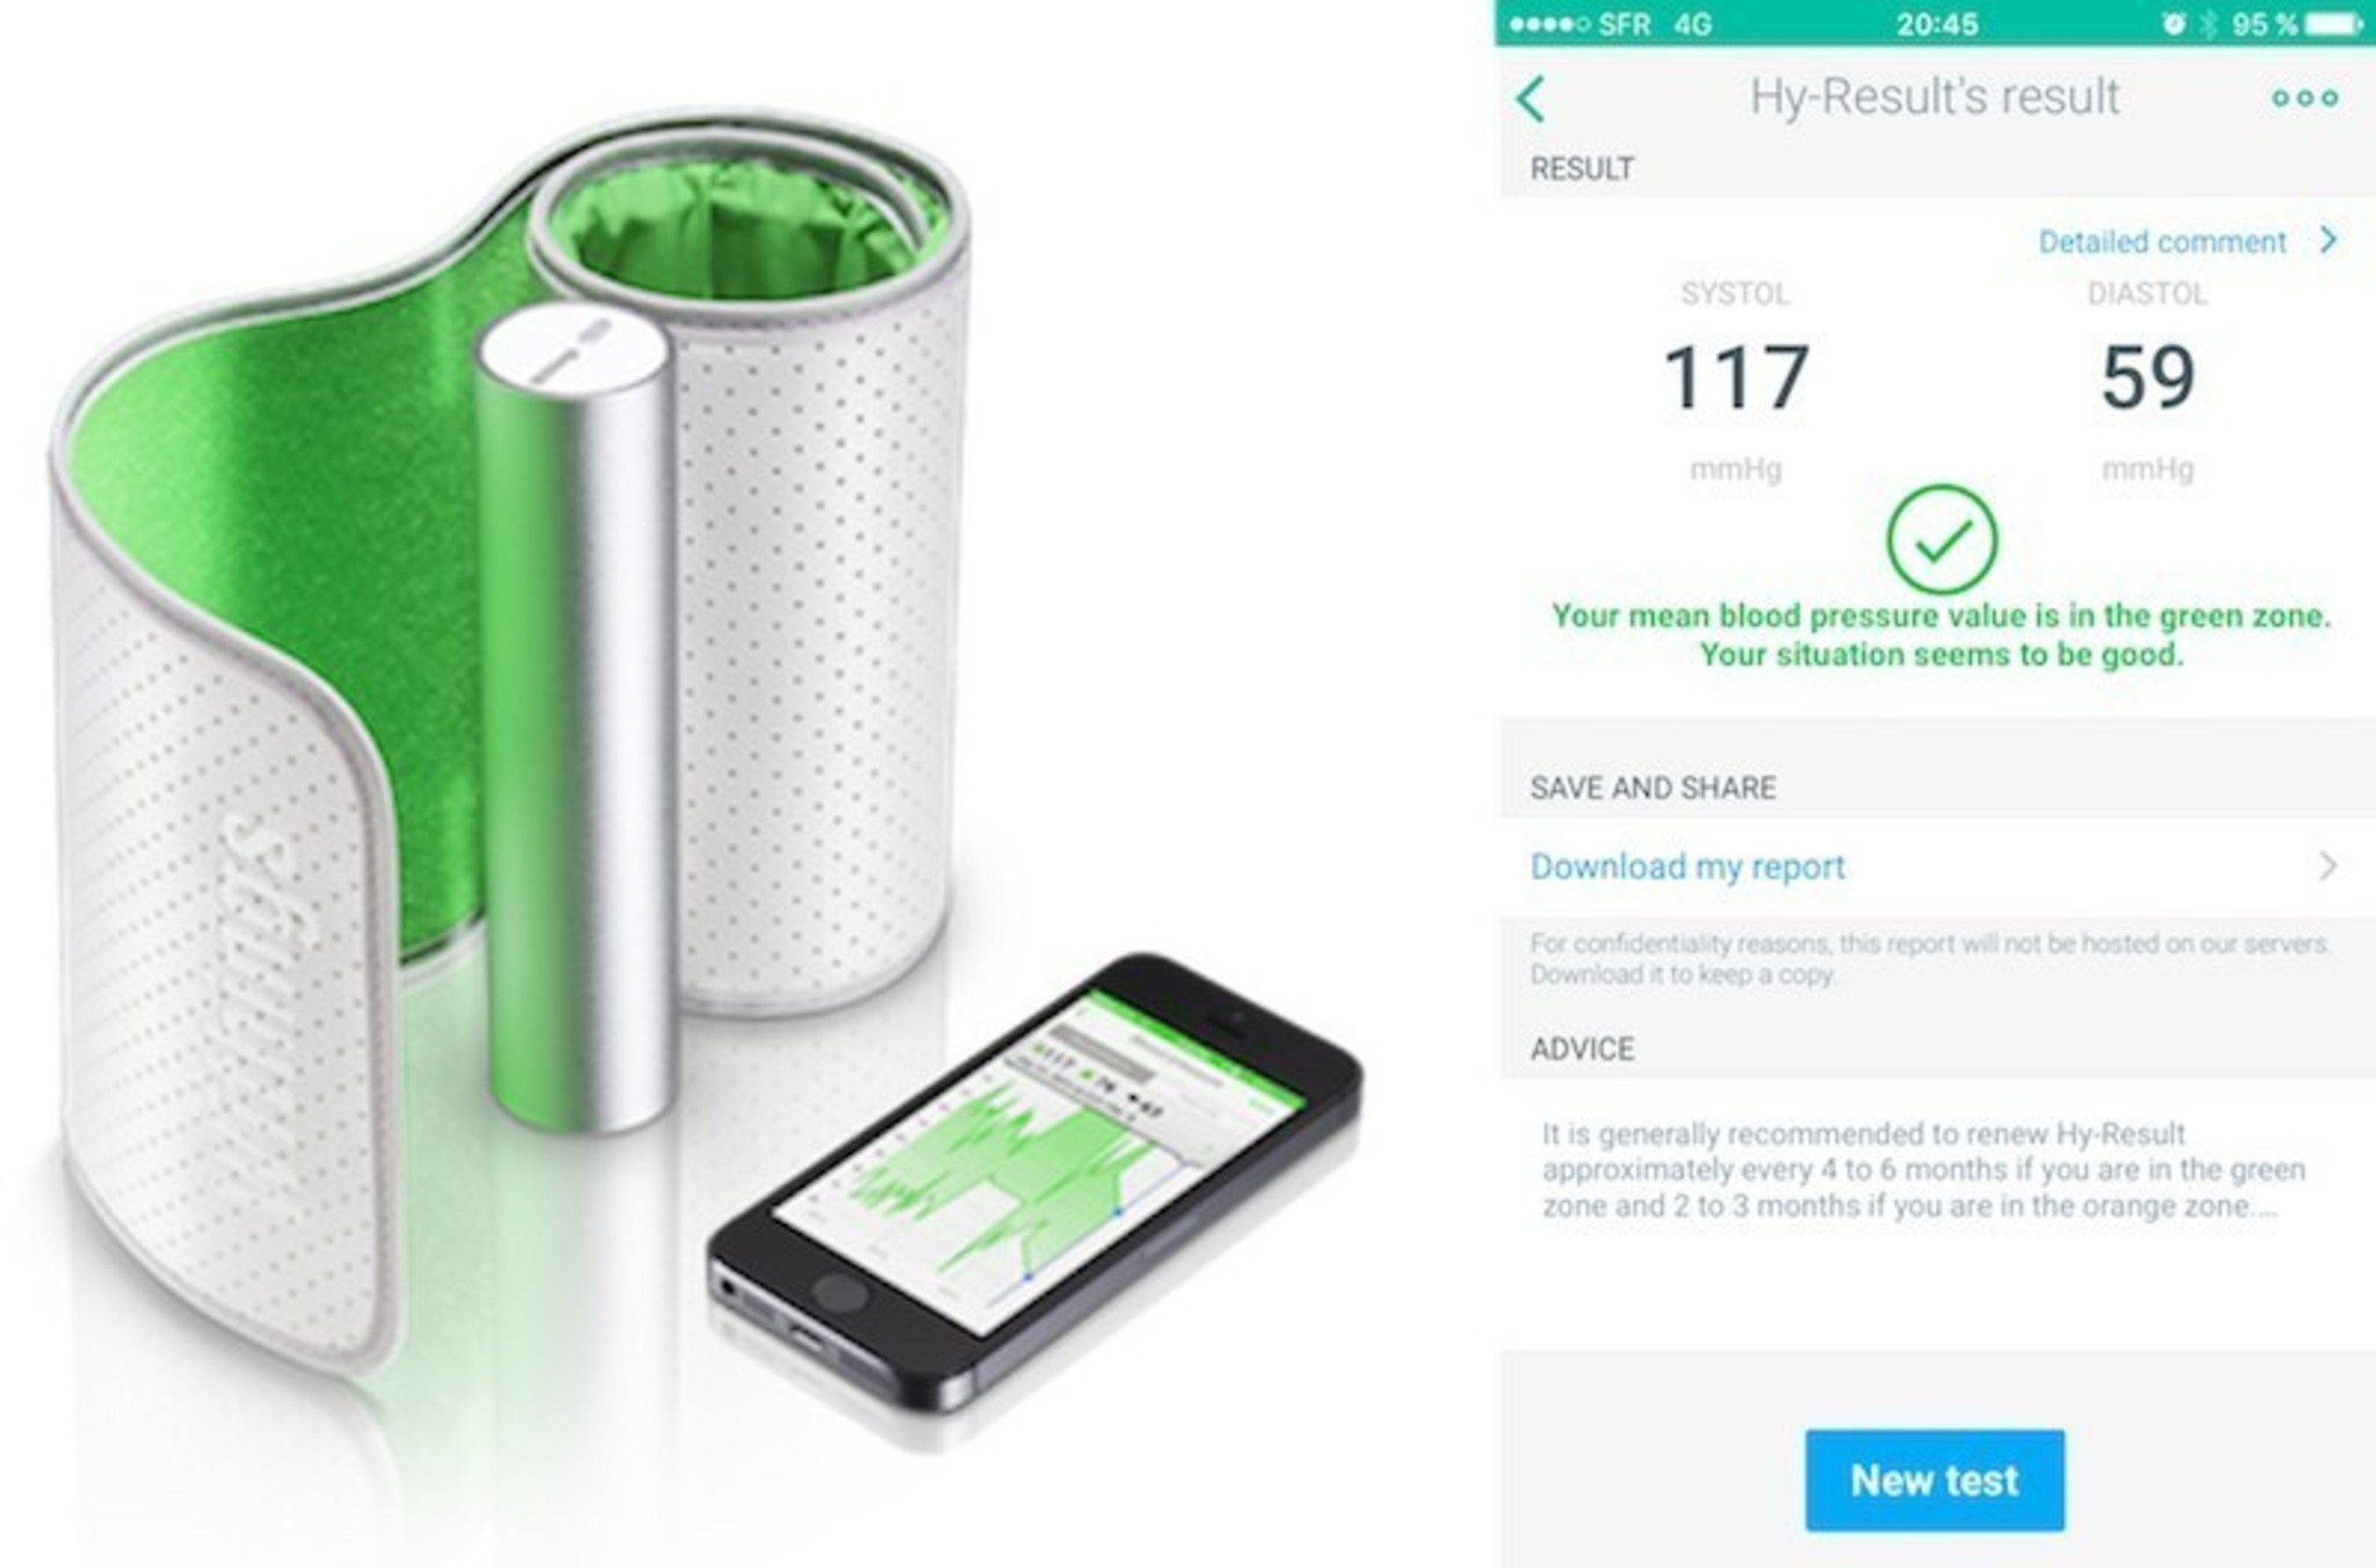 Withings Launches Hy-Result: An Advanced Advisory Service for the Better Control of High Blood Pressure